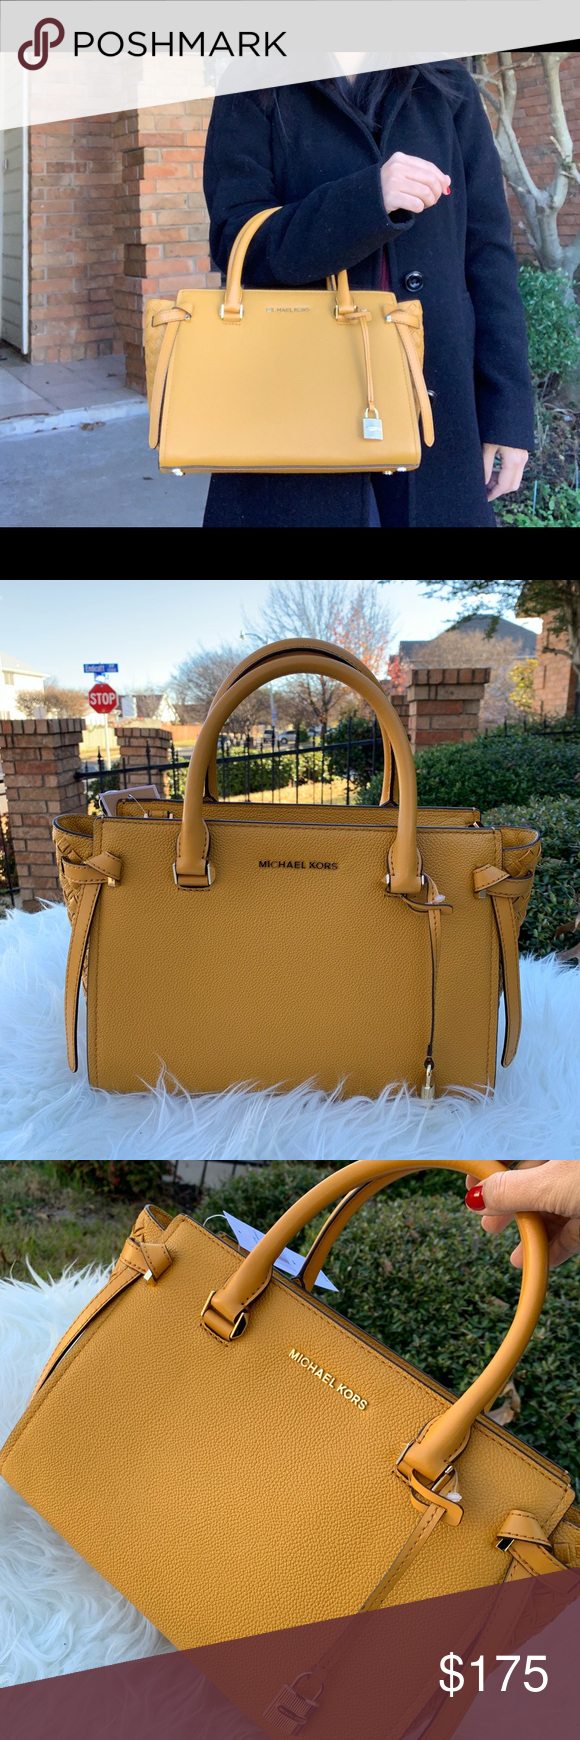 8a000eb2c031 ... Medium Satchel Leather Style 35H8GT6S6L New Collection from Michael  Kors Store today and I guarantee 100% authentic Color Marigold Size 11.4